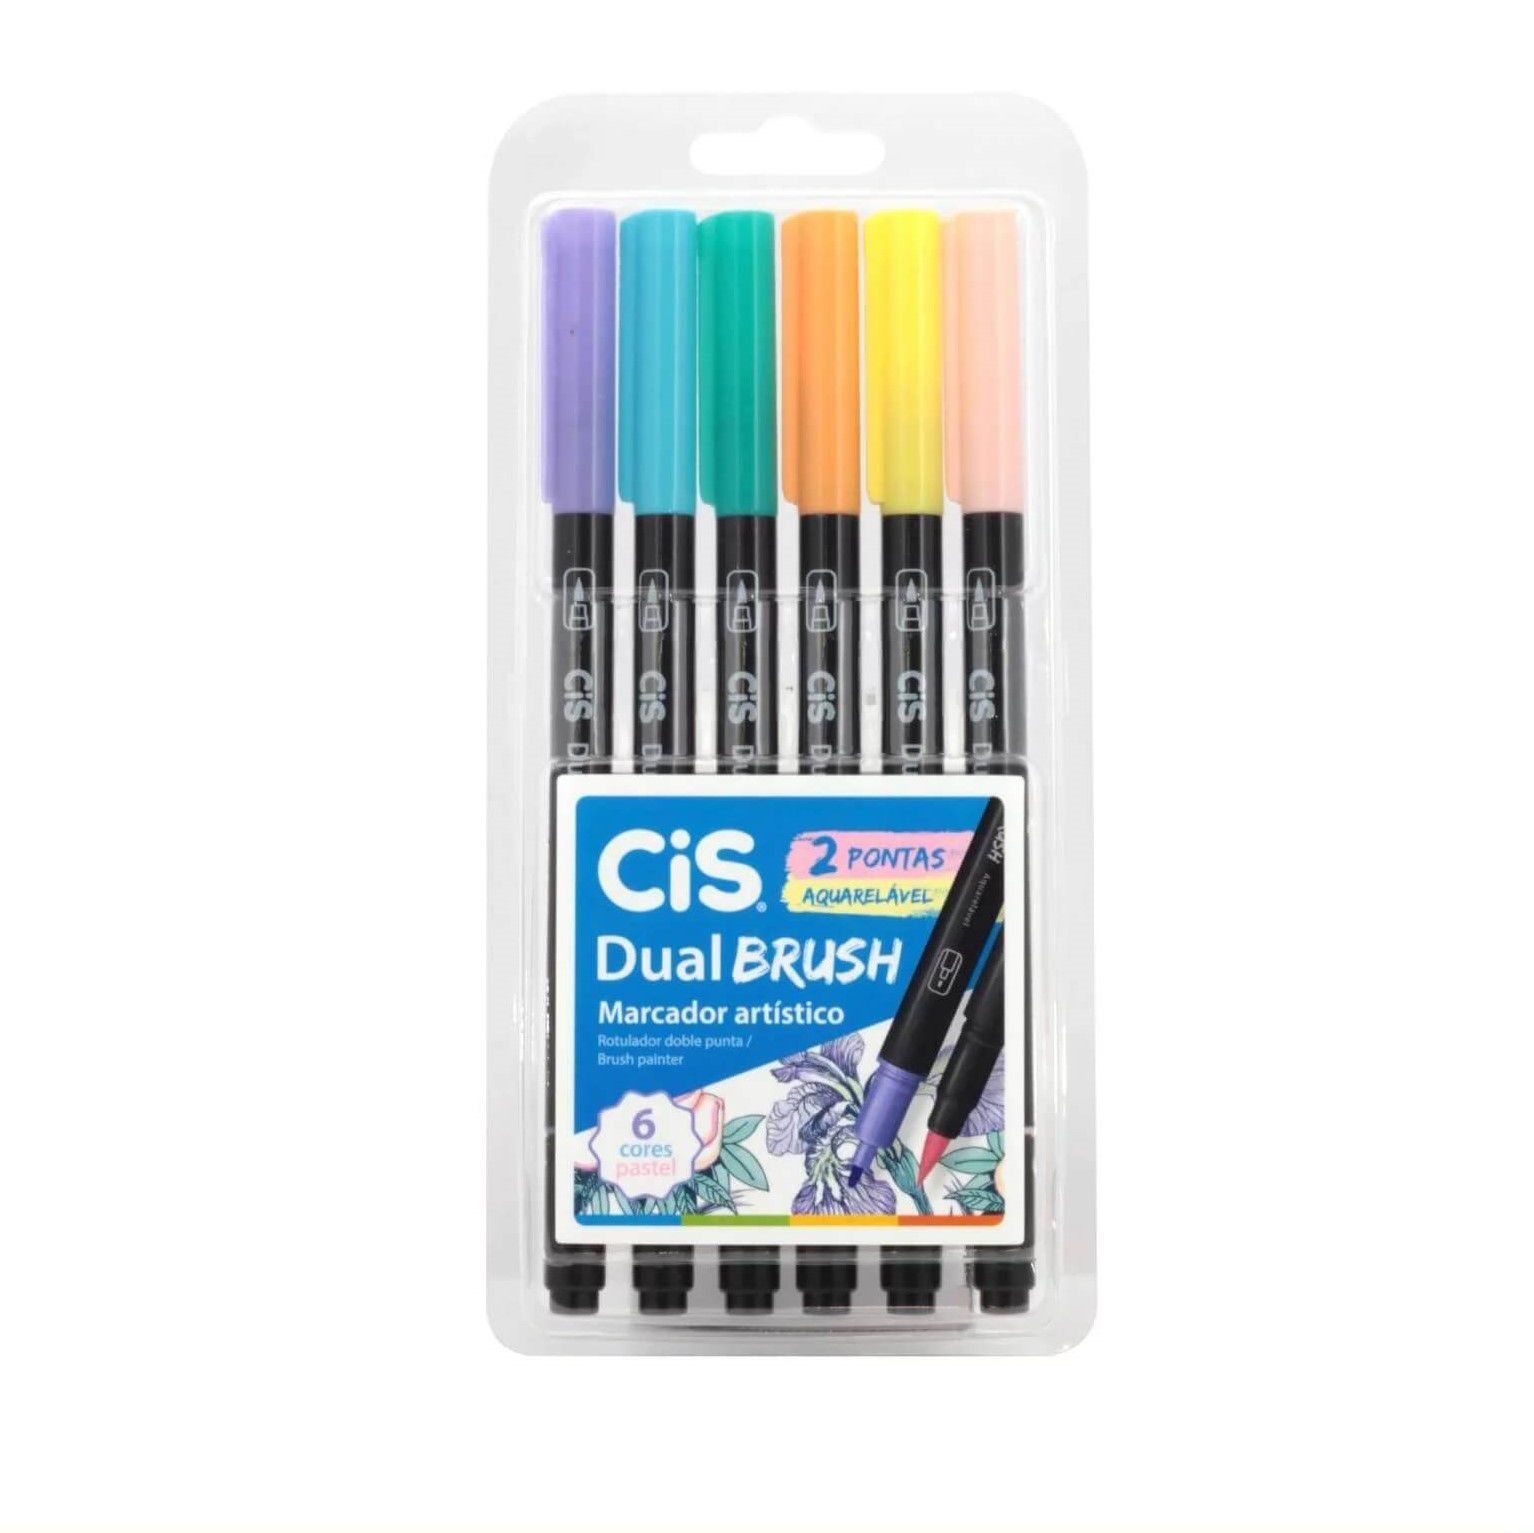 Caneta Dual Brush Pastel Estojo c/ 6 - CIS